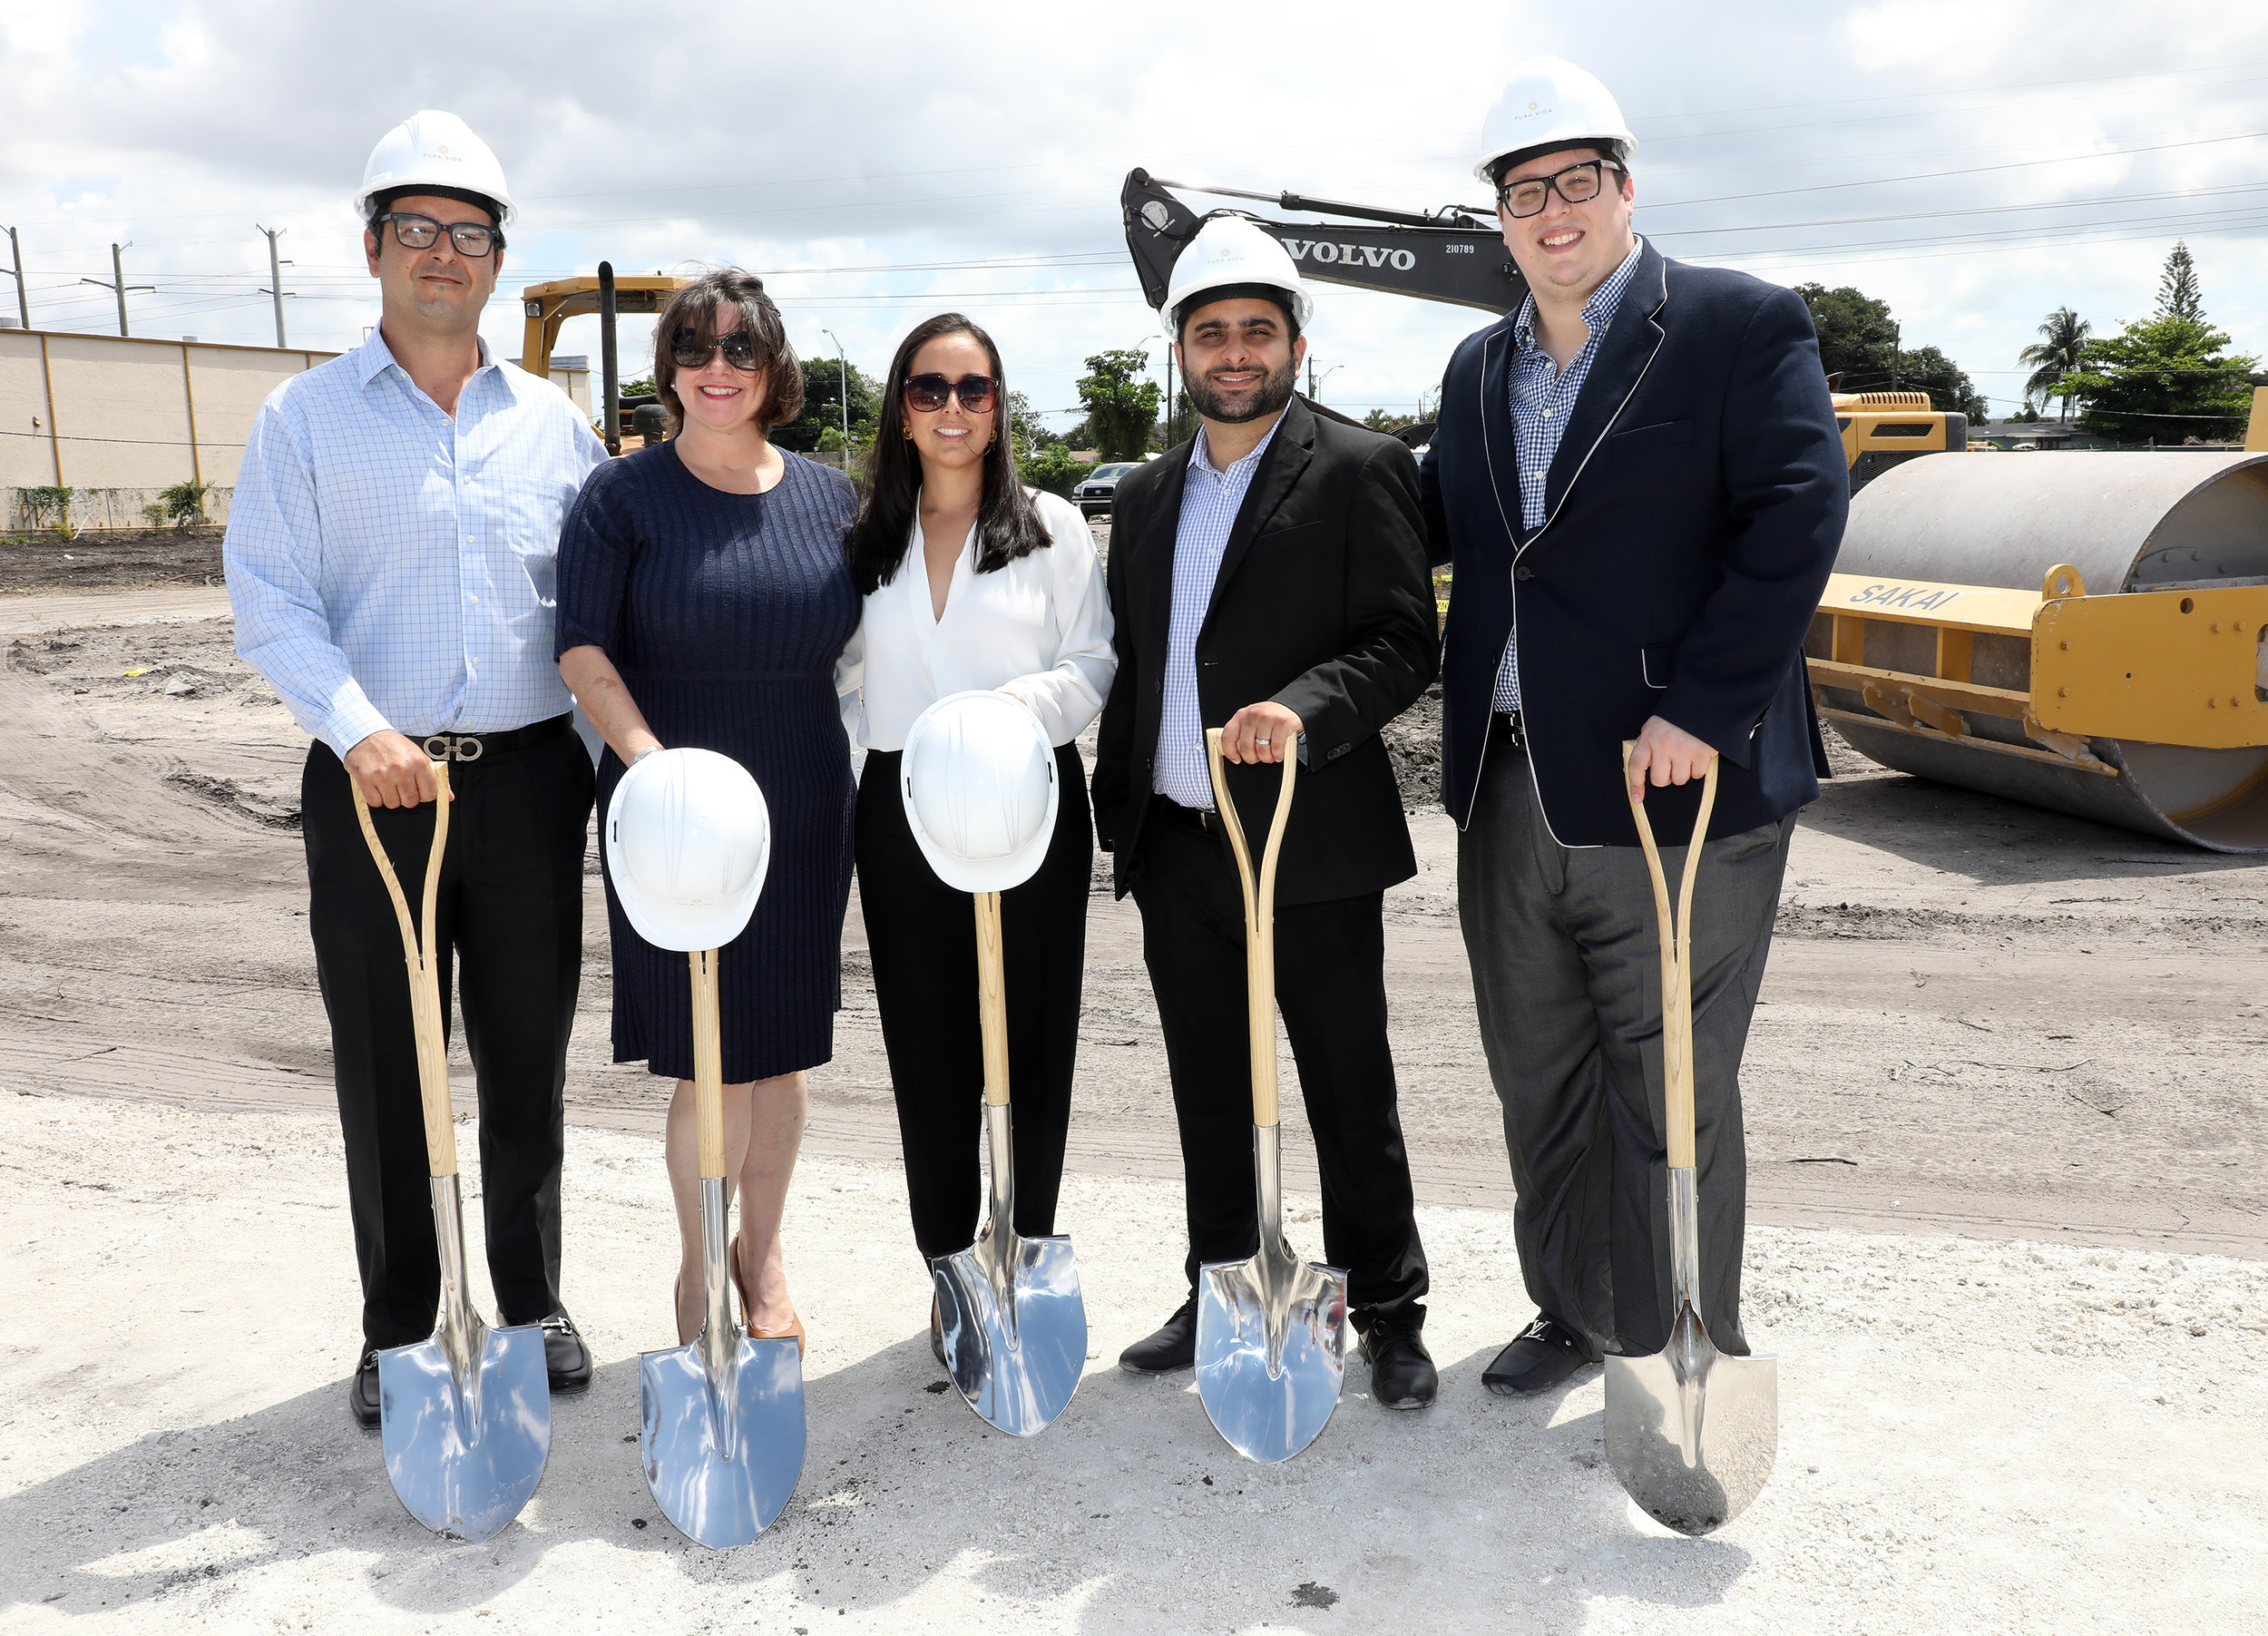 From L-R: Oscar Rodriguez, Arena Capital Holdings; Hialeah City Council President Vivian Casals-Munoz; Ana Rodriguez, Arena Capital Holdings; City of Hialeah Councilman Paul Hernandez; Sebastian Roiter, Arena Capital Holdings